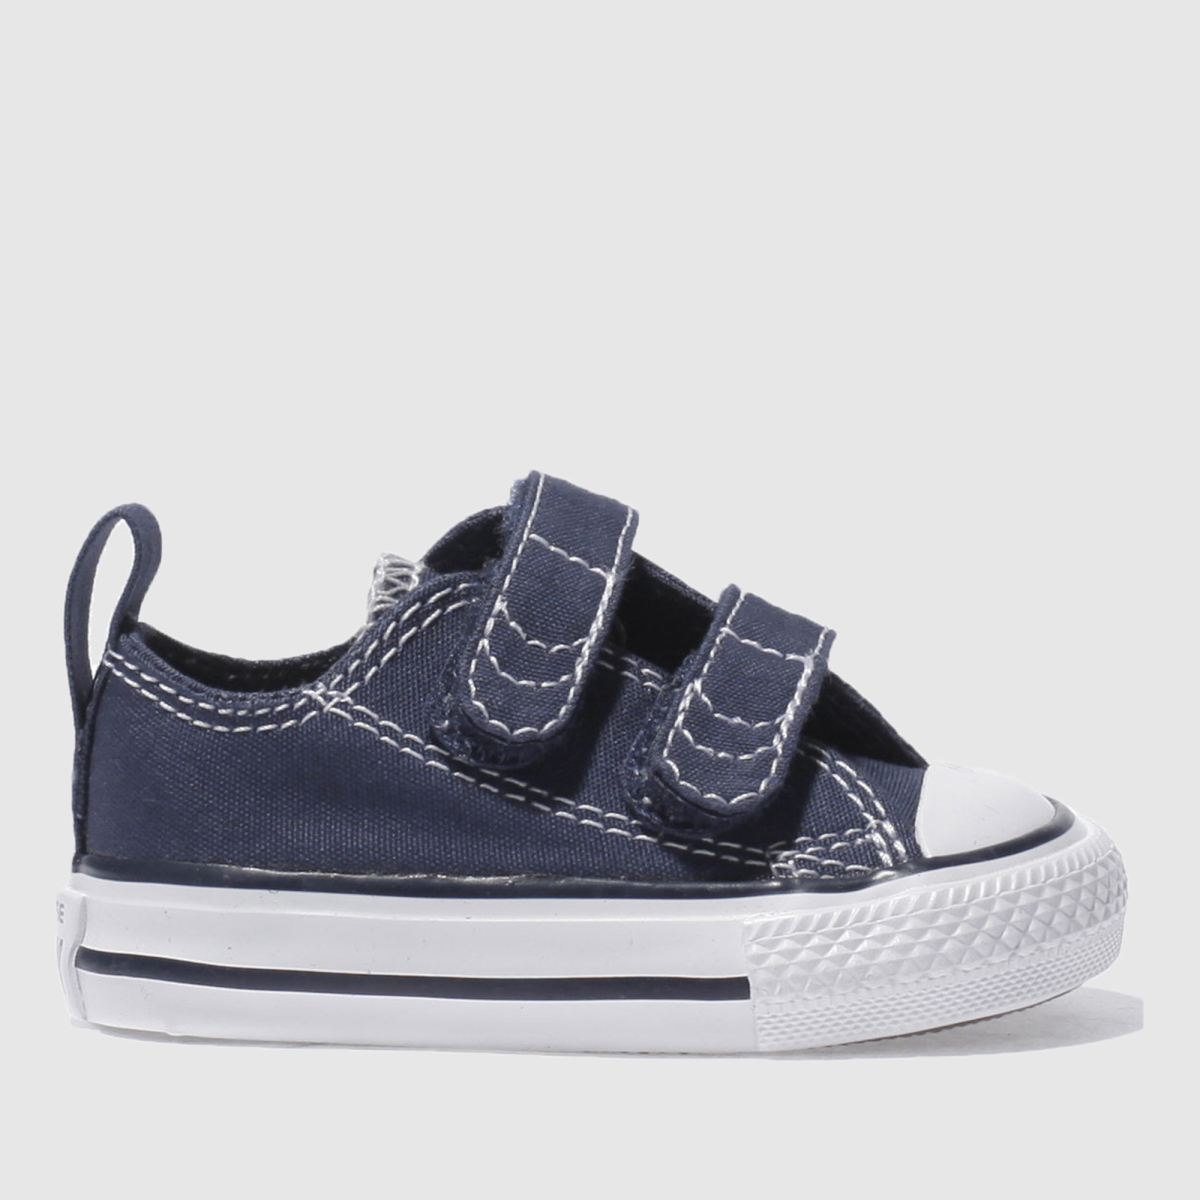 6a7c9f368eab Converse Navy All Star Ox 2v Trainers Toddler